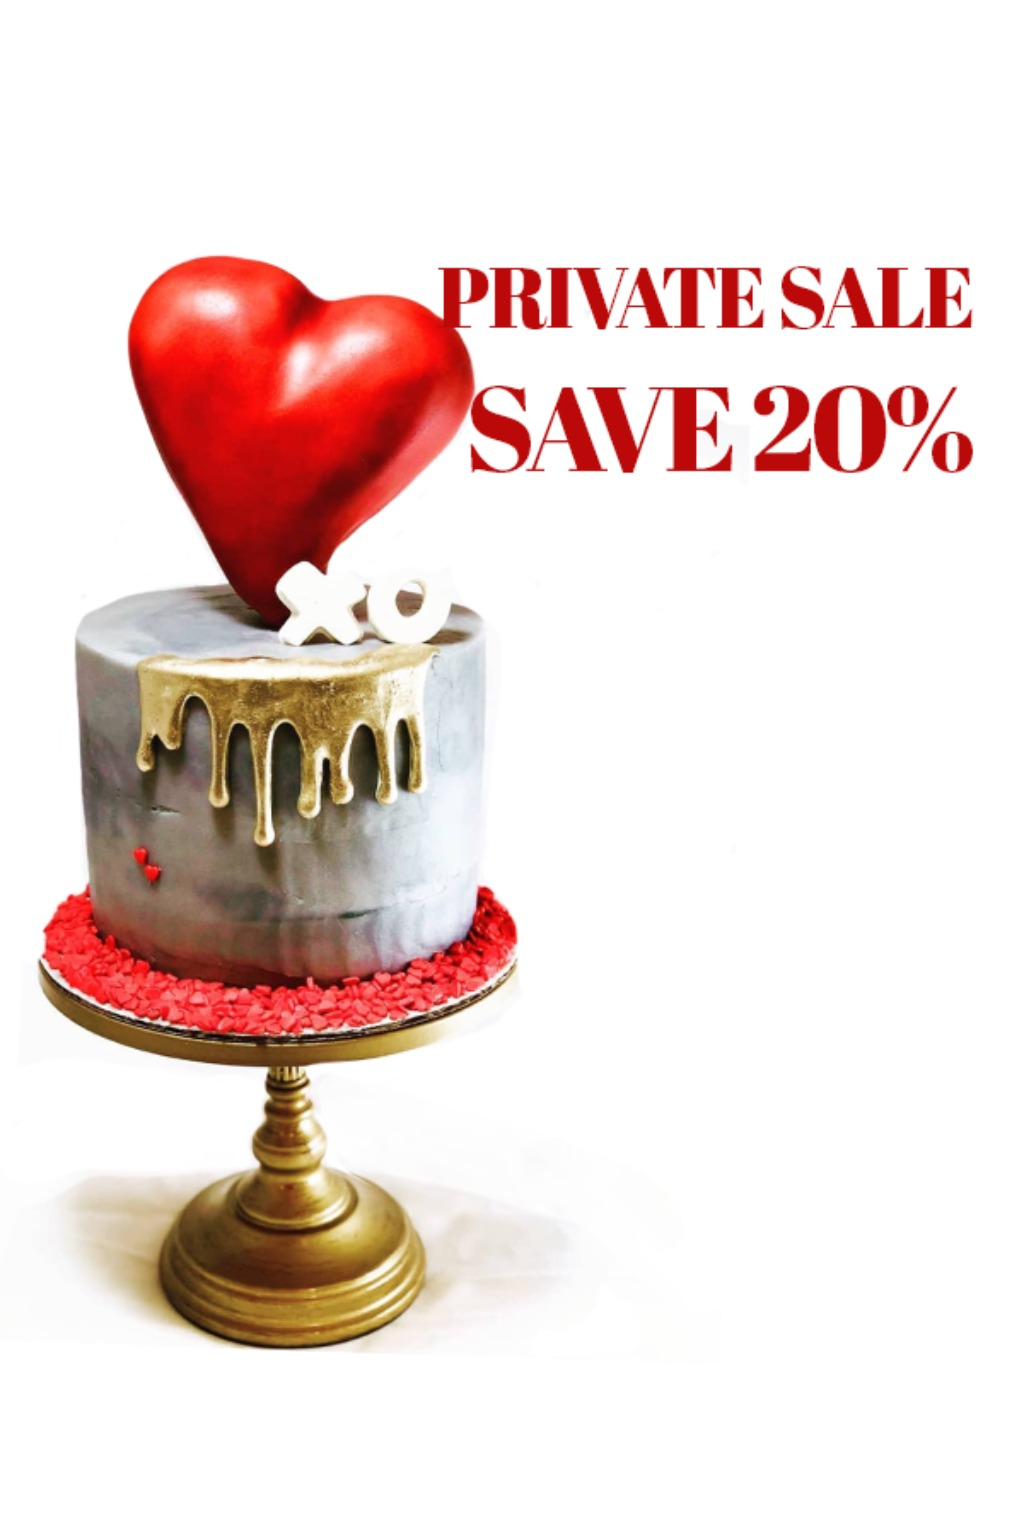 Opulent Treasures Private Sale Event  - SAVE 20%